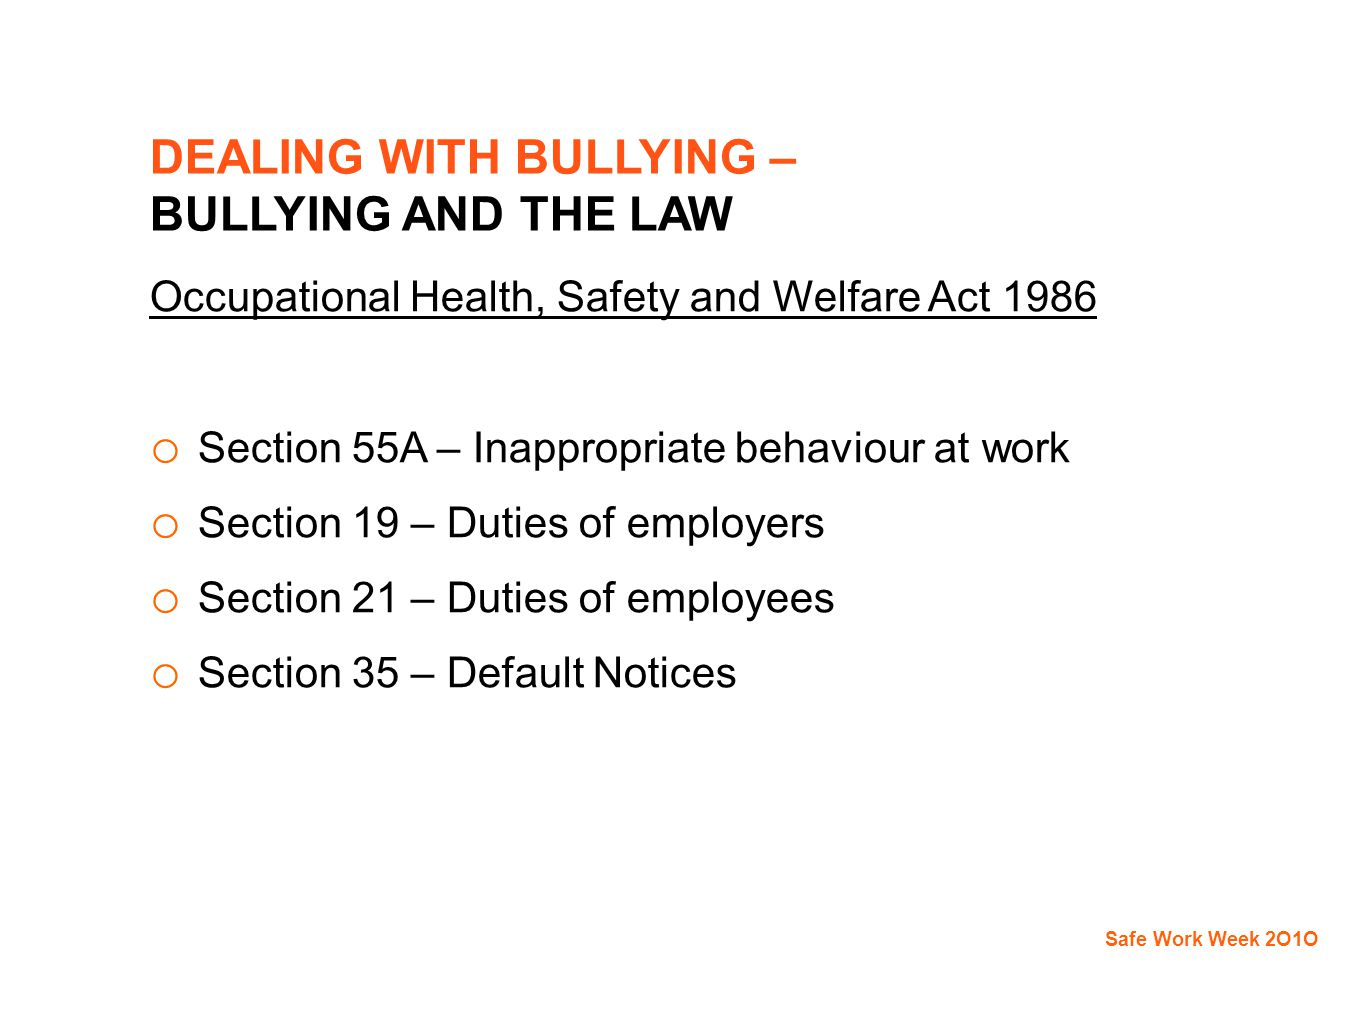 DEALING WITH BULLYING – BULLYING AND THE LAW Occupational Health, Safety and Welfare Act 1986 o Section 55A – Inappropriate behaviour at work o Section 19 – Duties of employers o Section 21 – Duties of employees o Section 35 – Default Notices Safe Work Week 2O1O